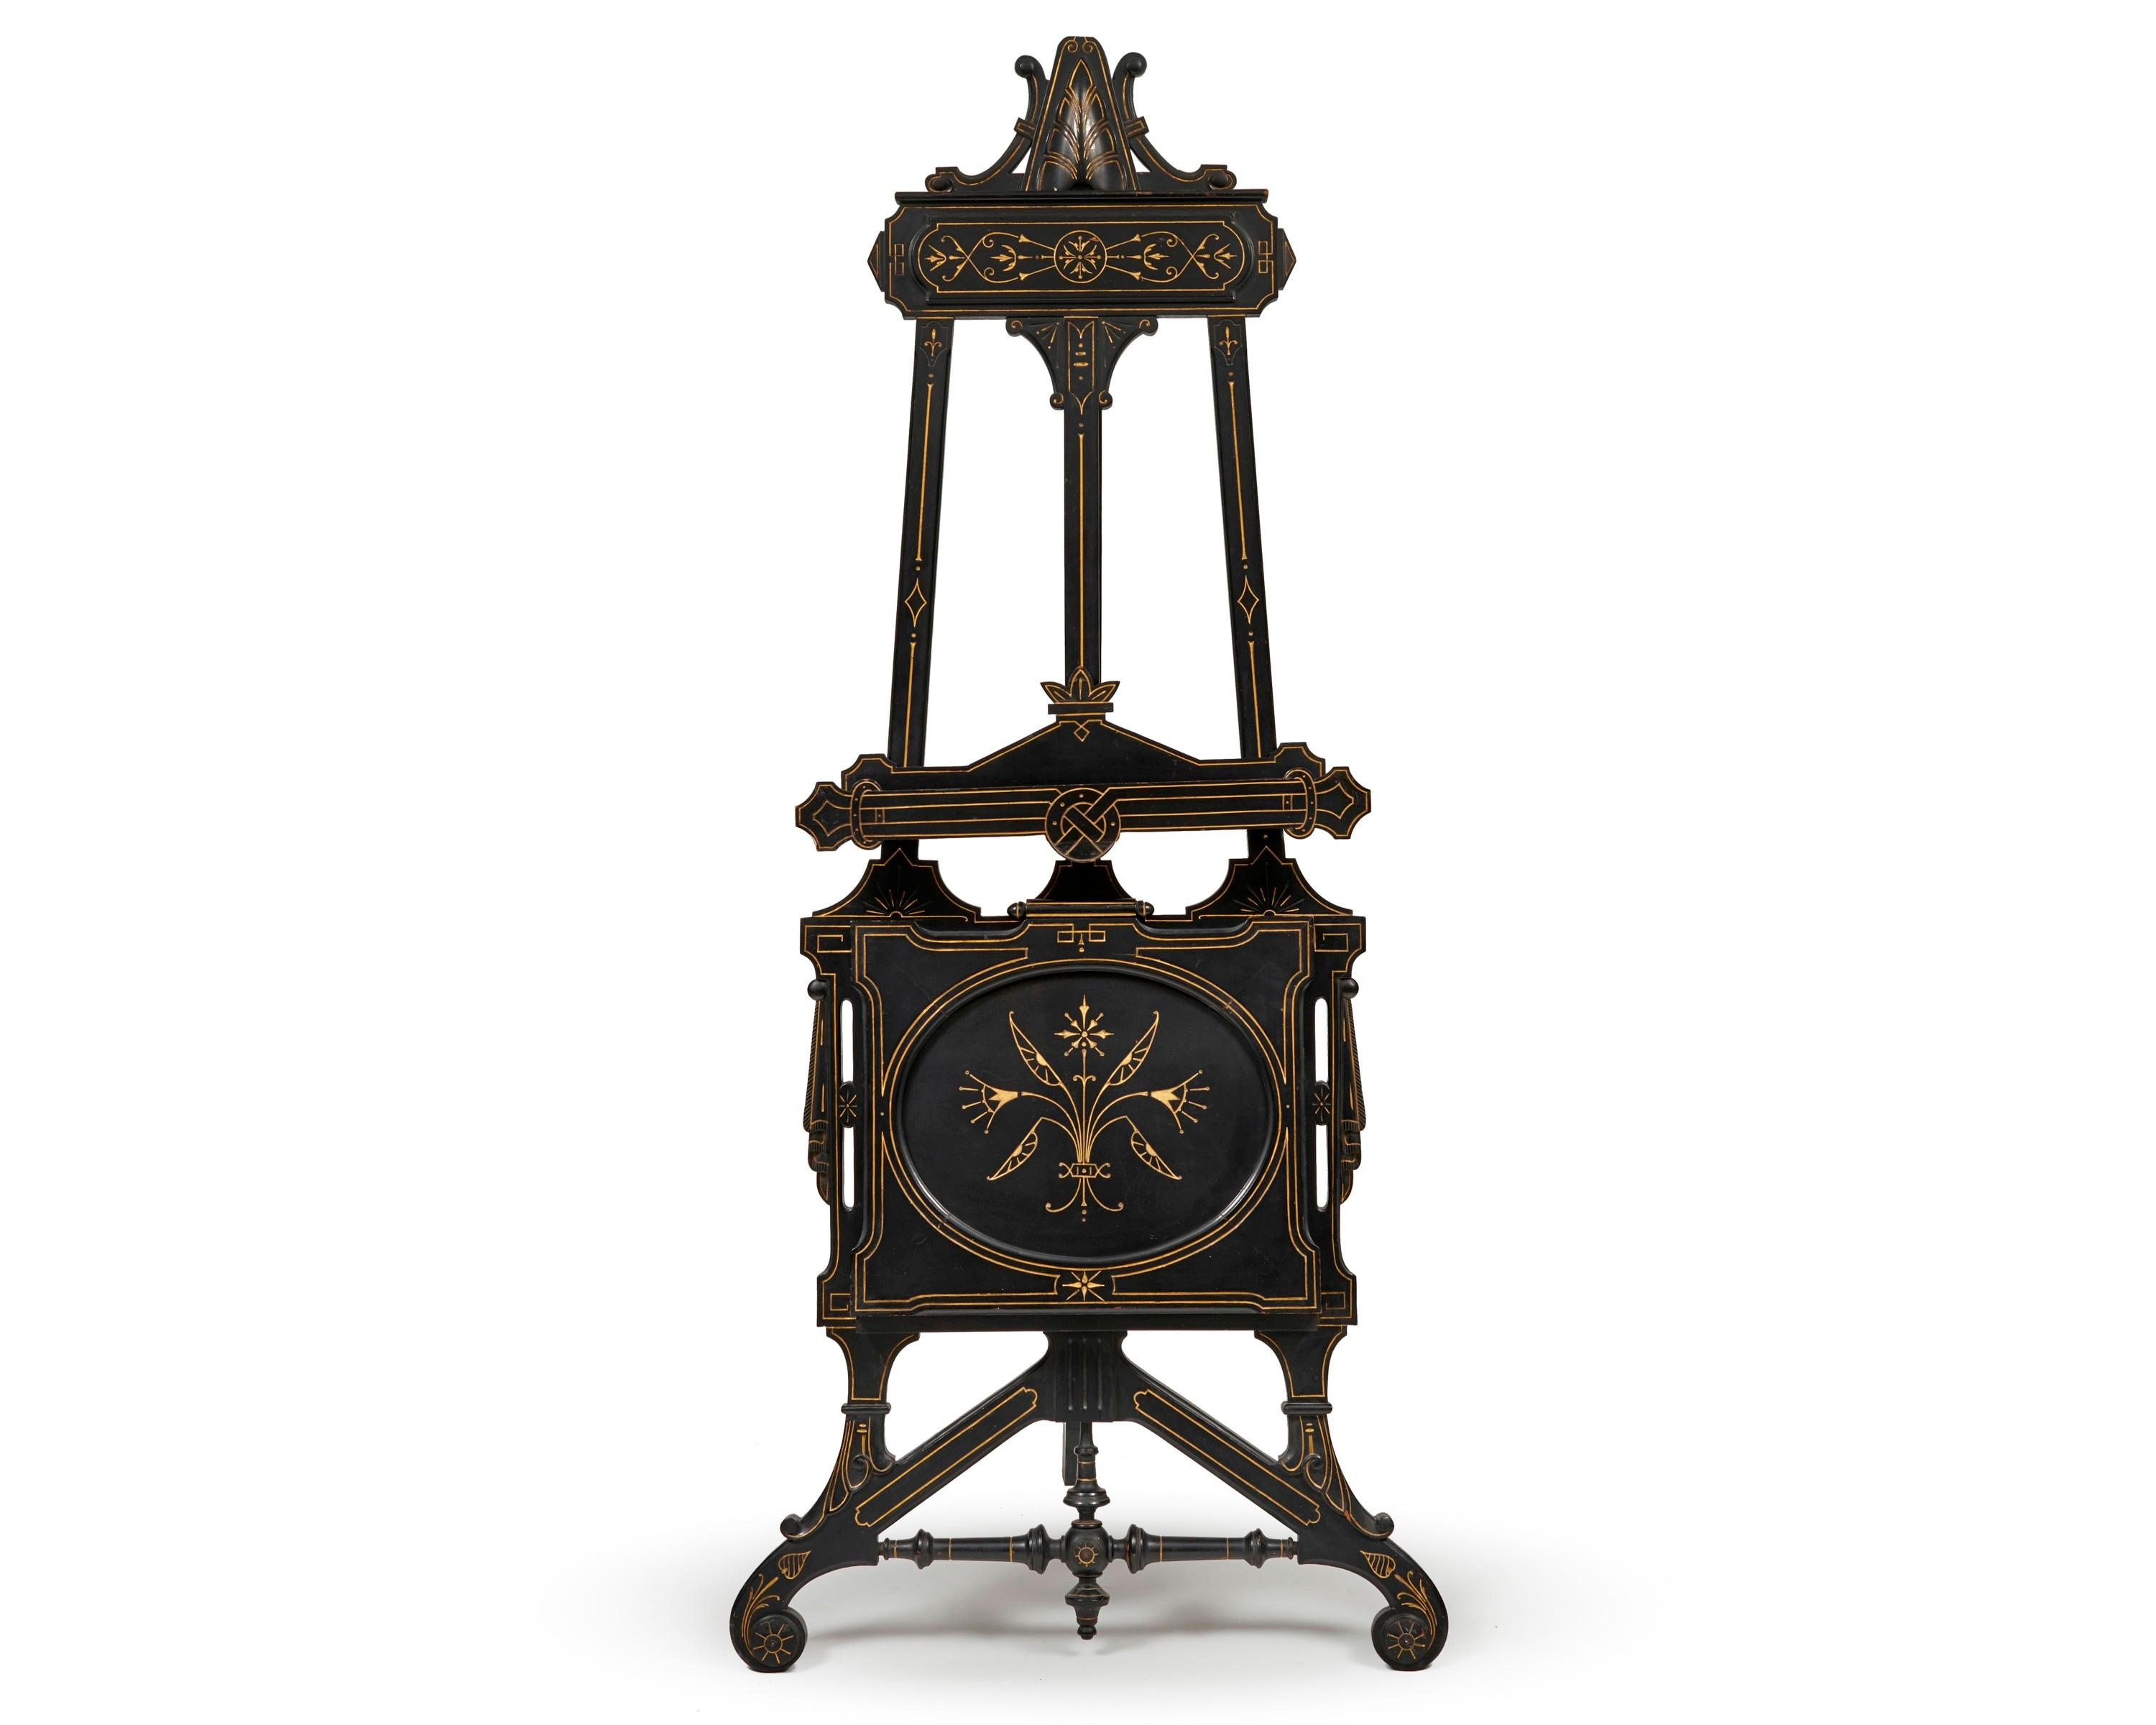 Victorian Carved and Gilt Decorated Ebonized Adjustable Easel, ca. 1870